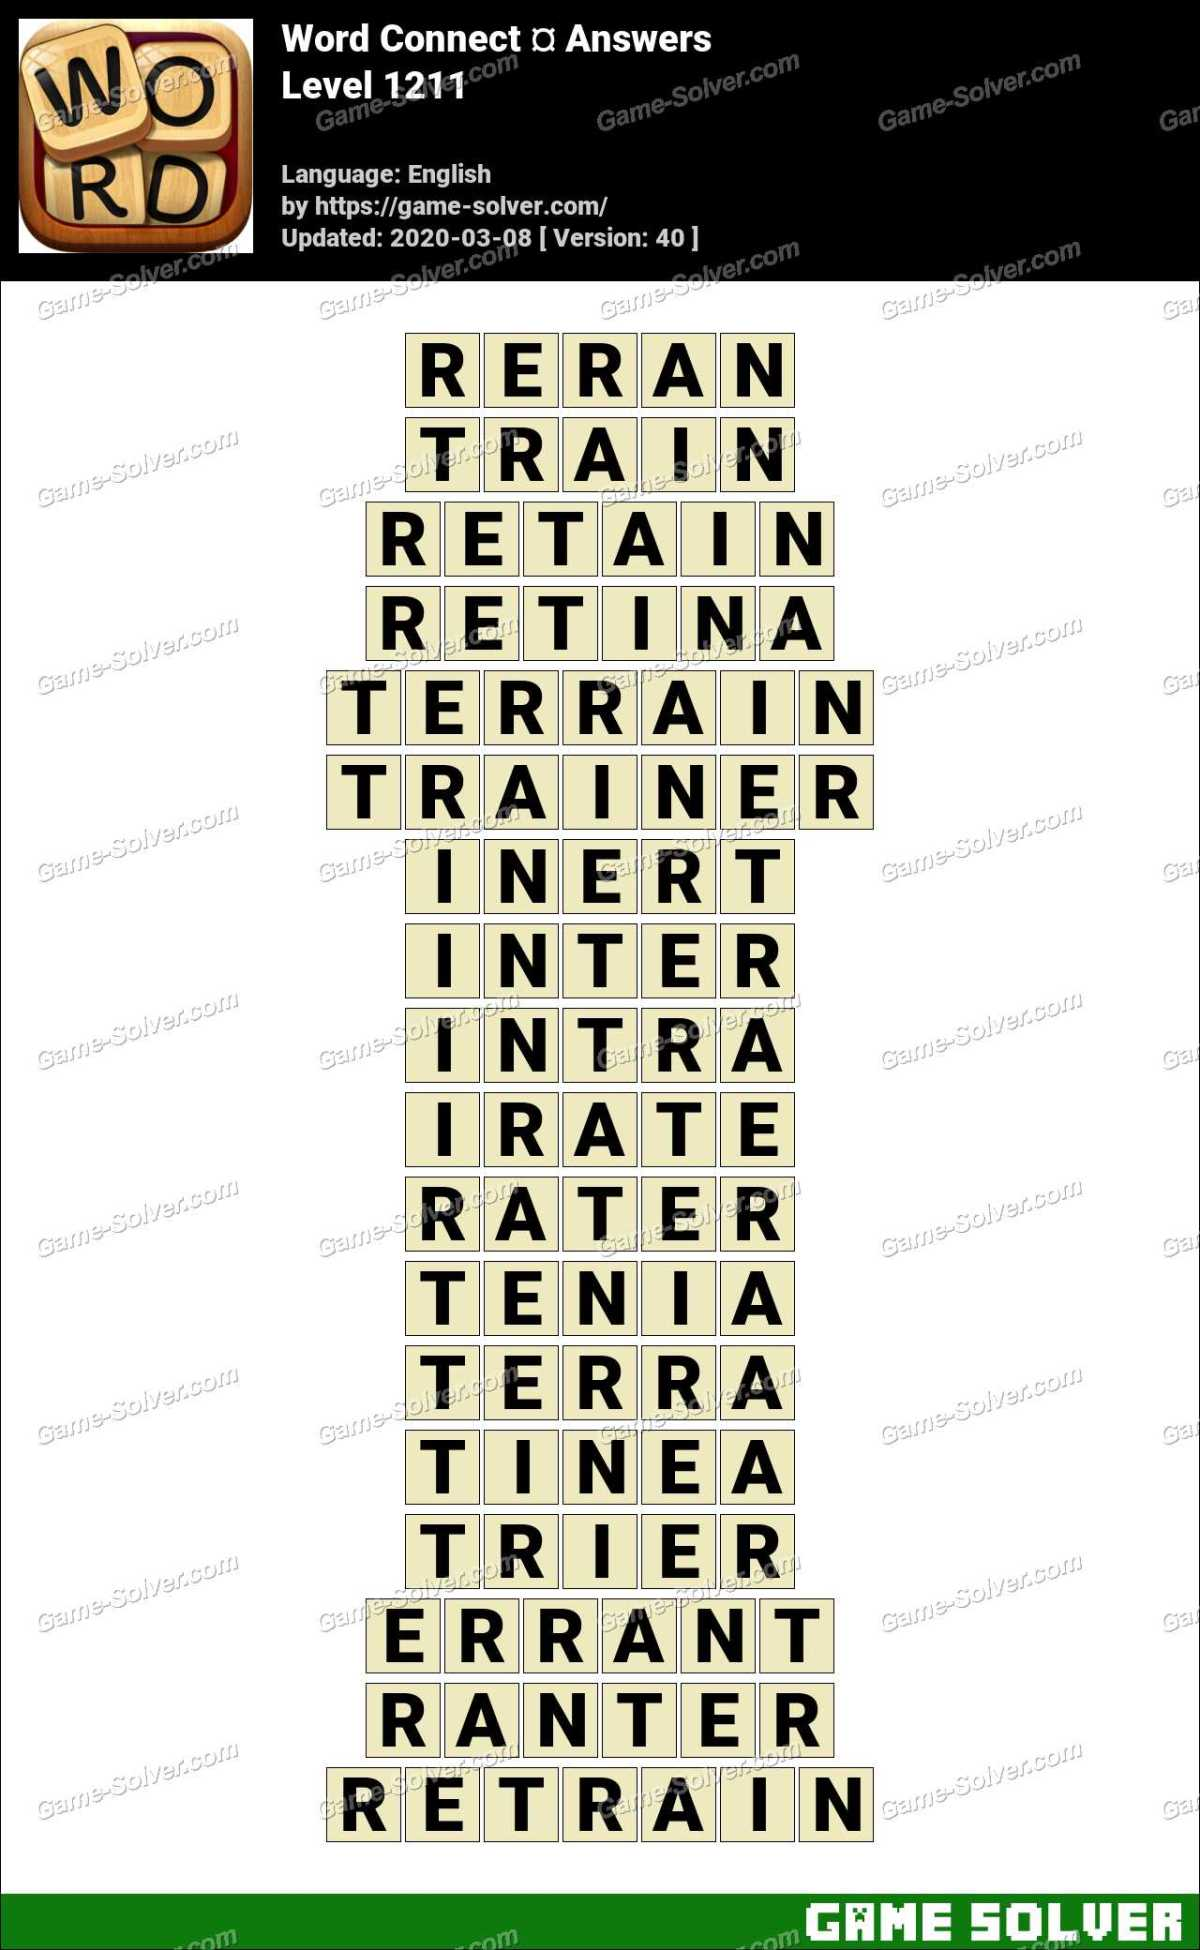 Word Connect Level 1211 Answers